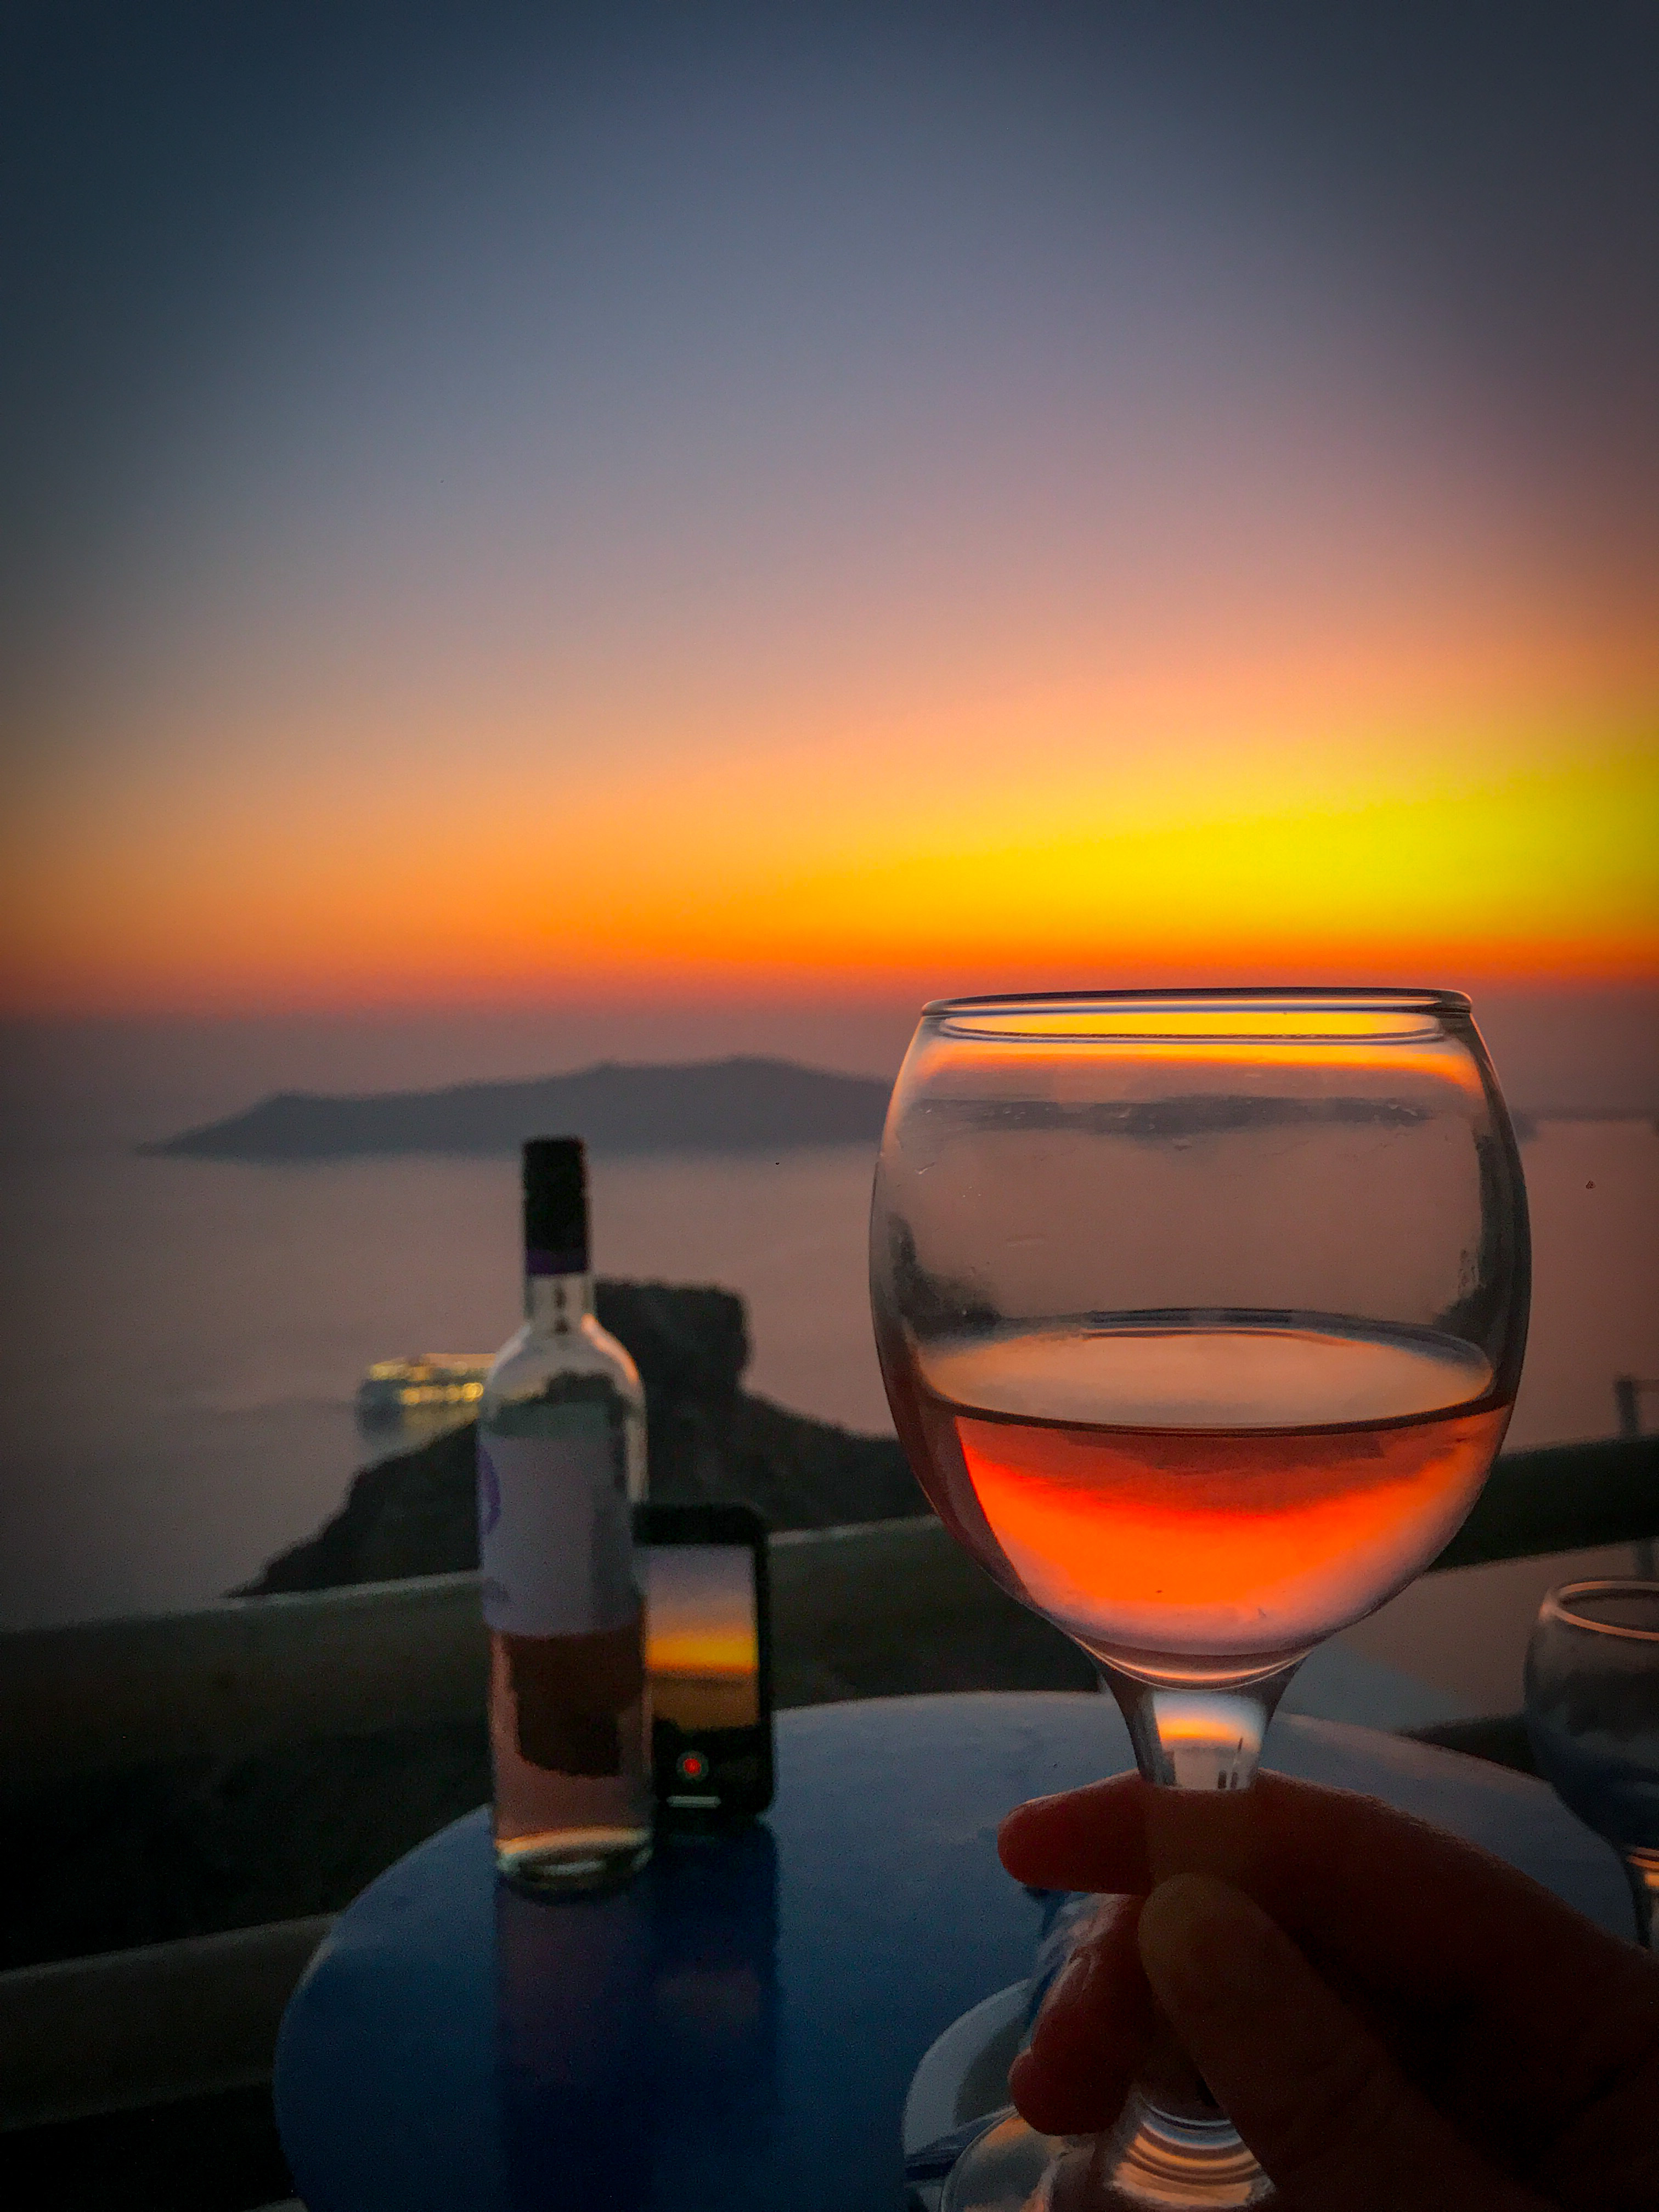 A Santorini Sunset as it reflects through a wineglass and our other phone propped up against the wine bottle as we take a time lapse of the sunset.